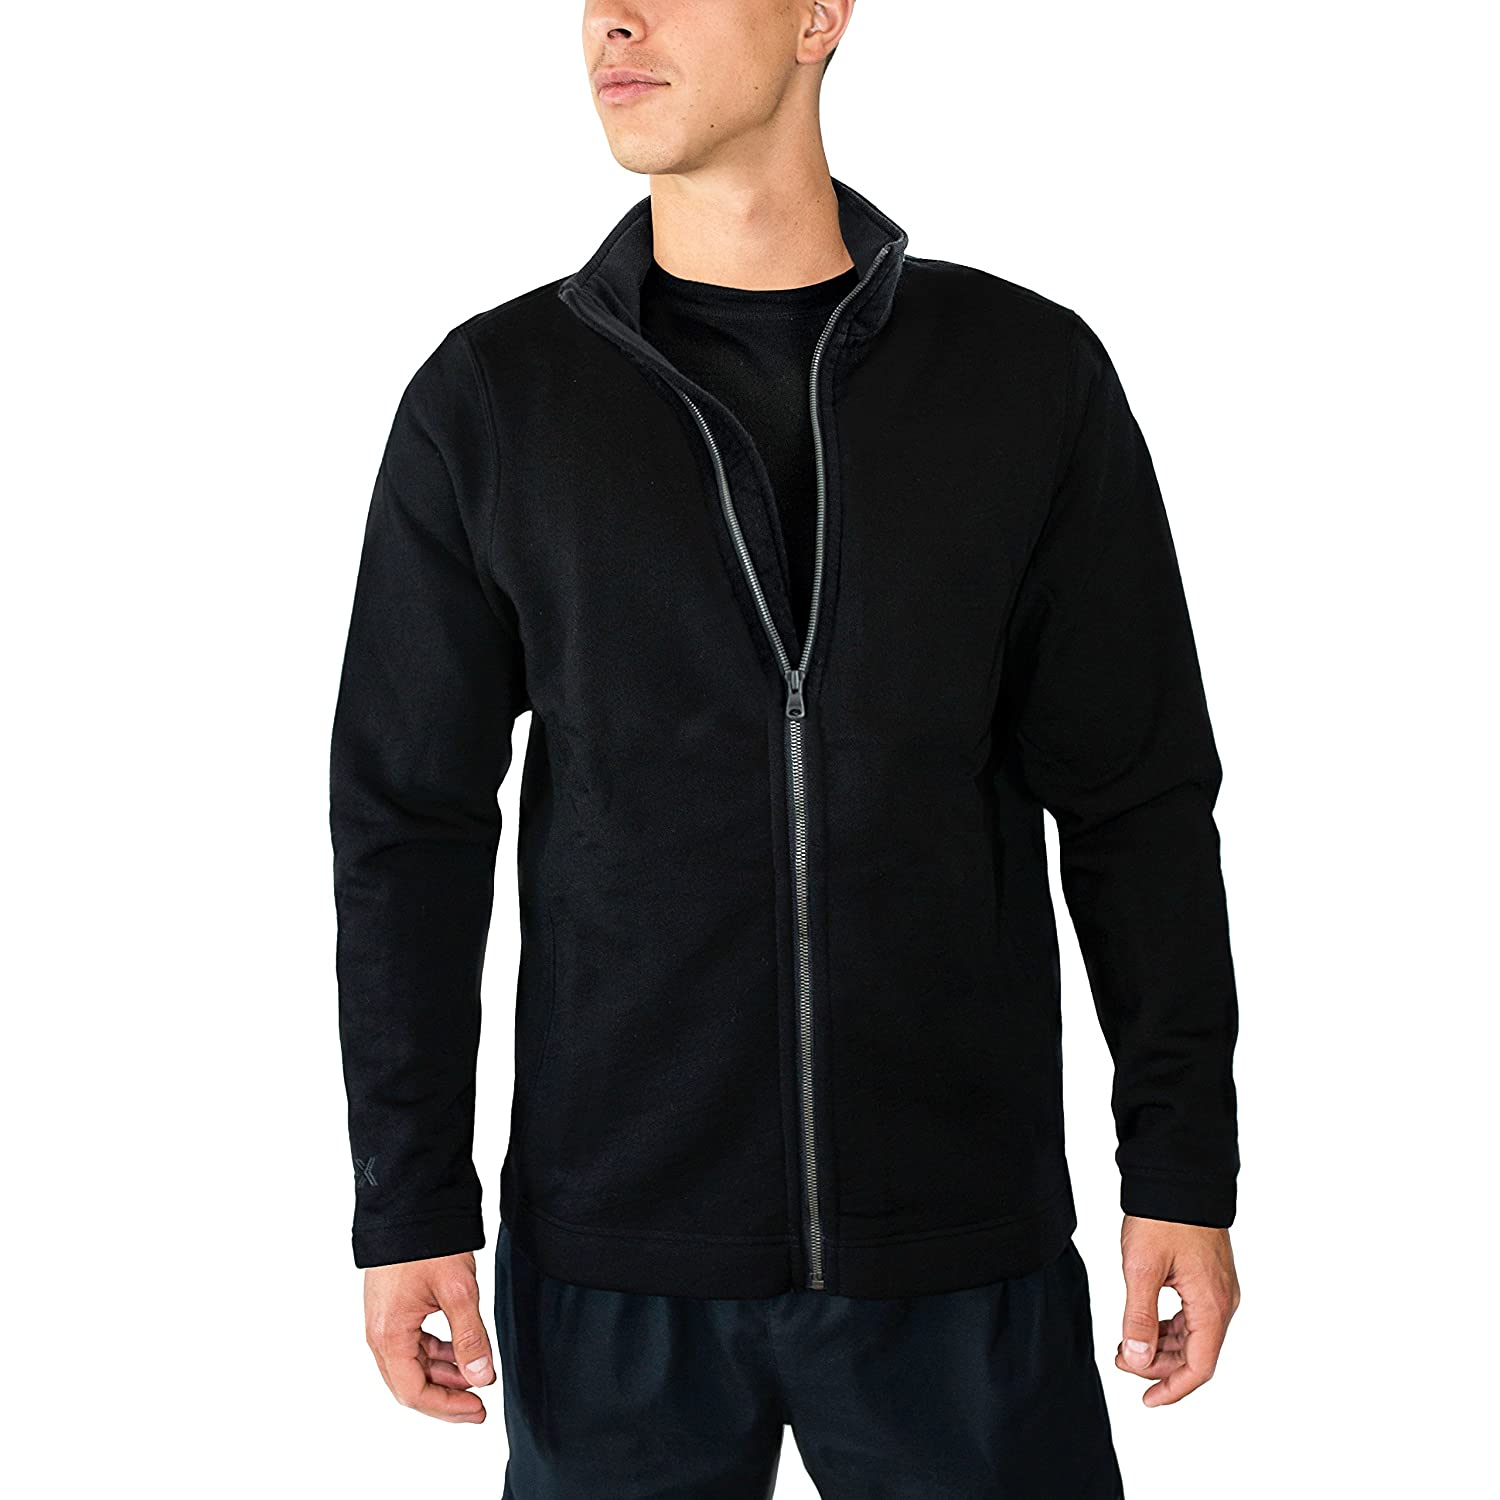 WoolX Men's Merino Wool Sweatshirt Jacket - 100% Merino Wool - Extremely Warm X711